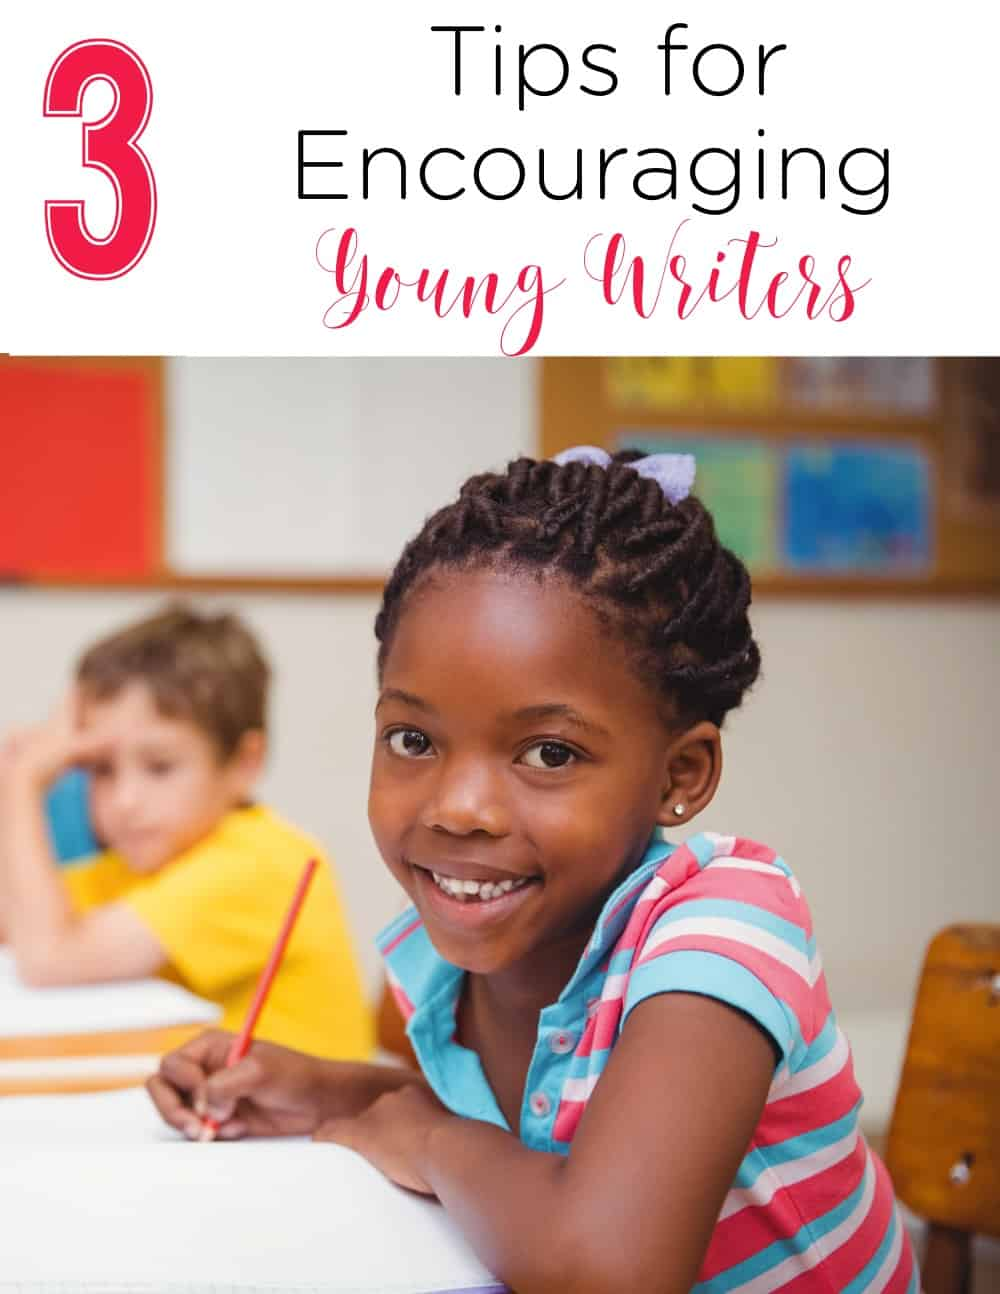 Do your young writers need a boost? These 3 tips are easy ways to encourage them to be excellent writers! Perfect tips for kindergarten writing, first grade writing, and even second grade writing! #kindergarten #firstgrade #homeschool #writing #literacy